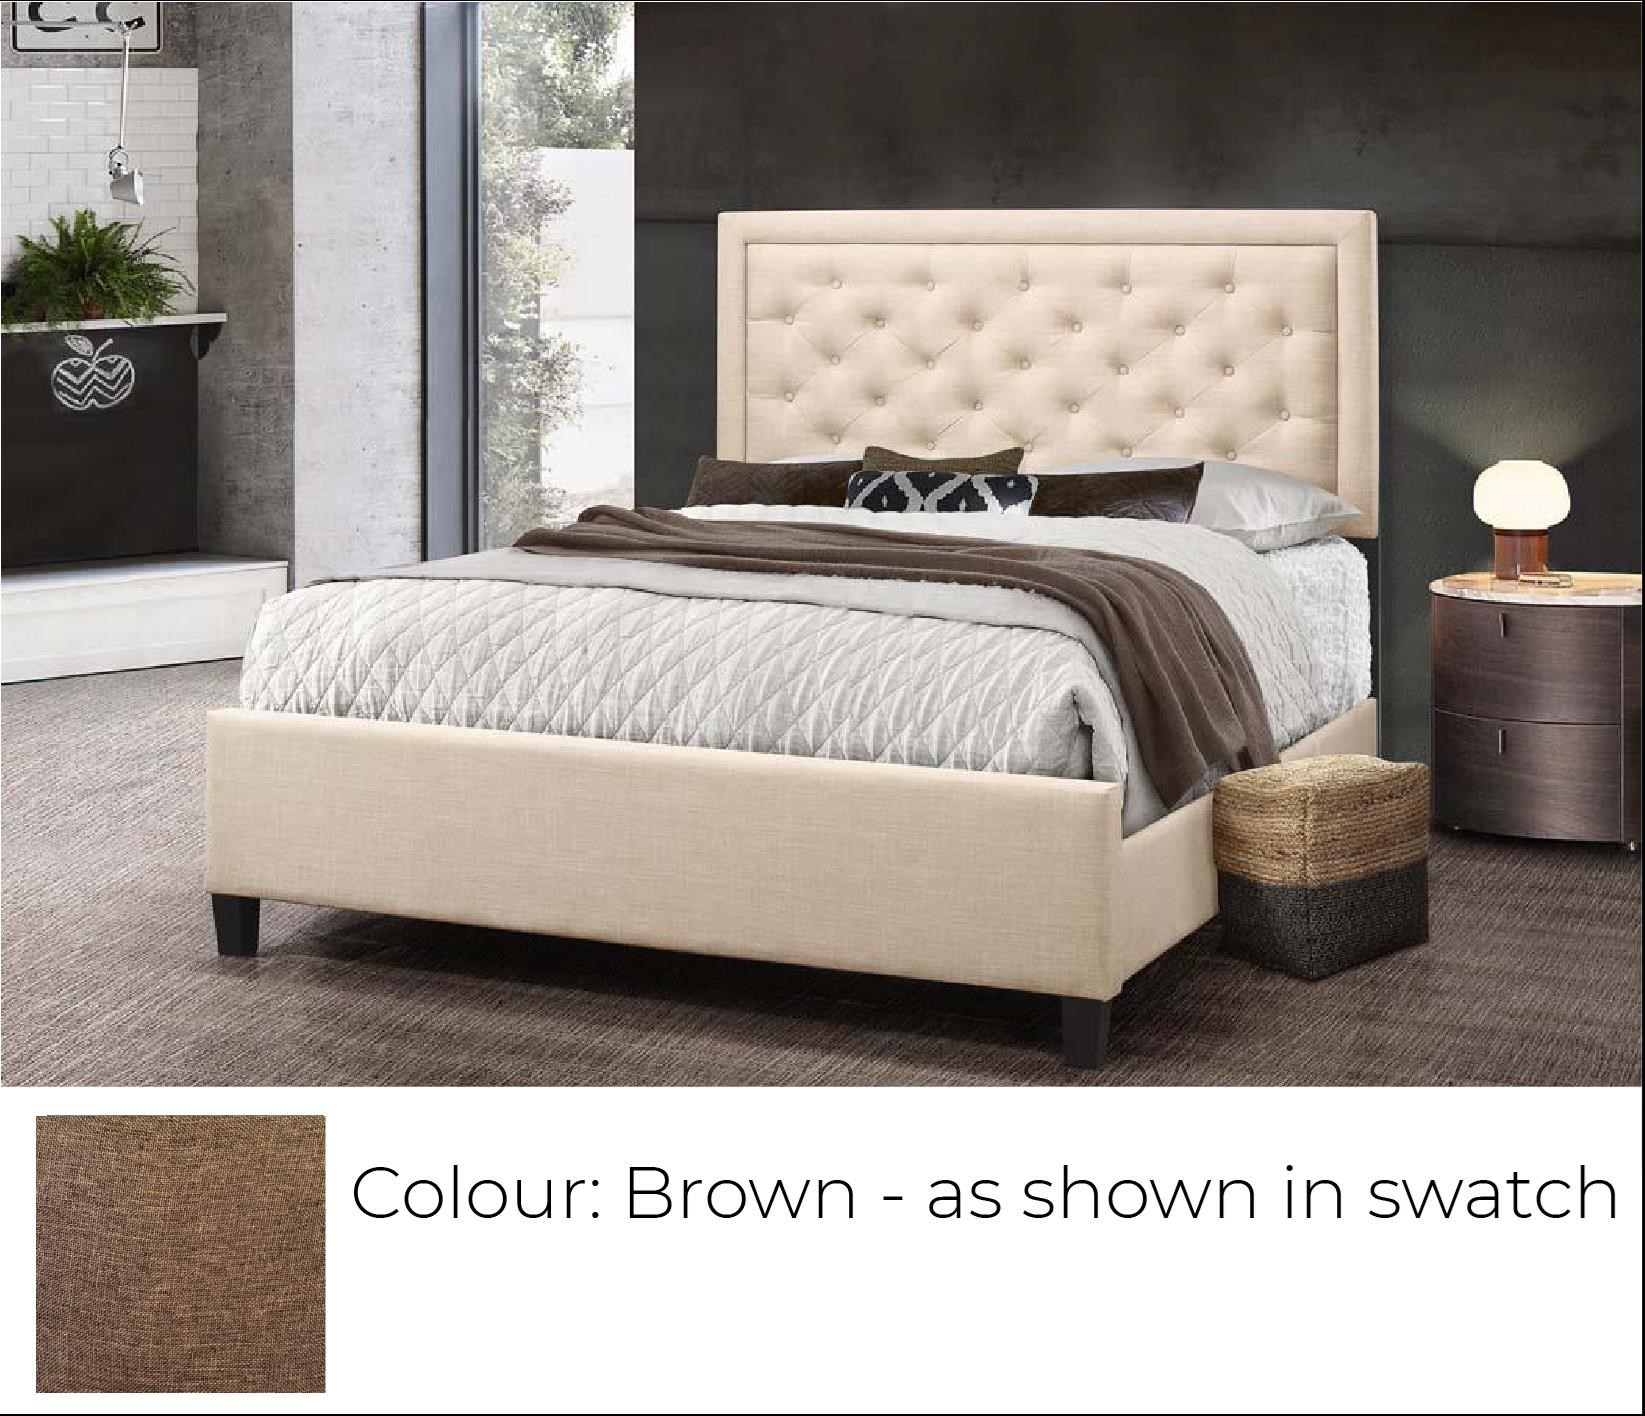 B622 - Ready to Assemble Upholstered Bed - Brown at Bennett's Furniture and Mattresses